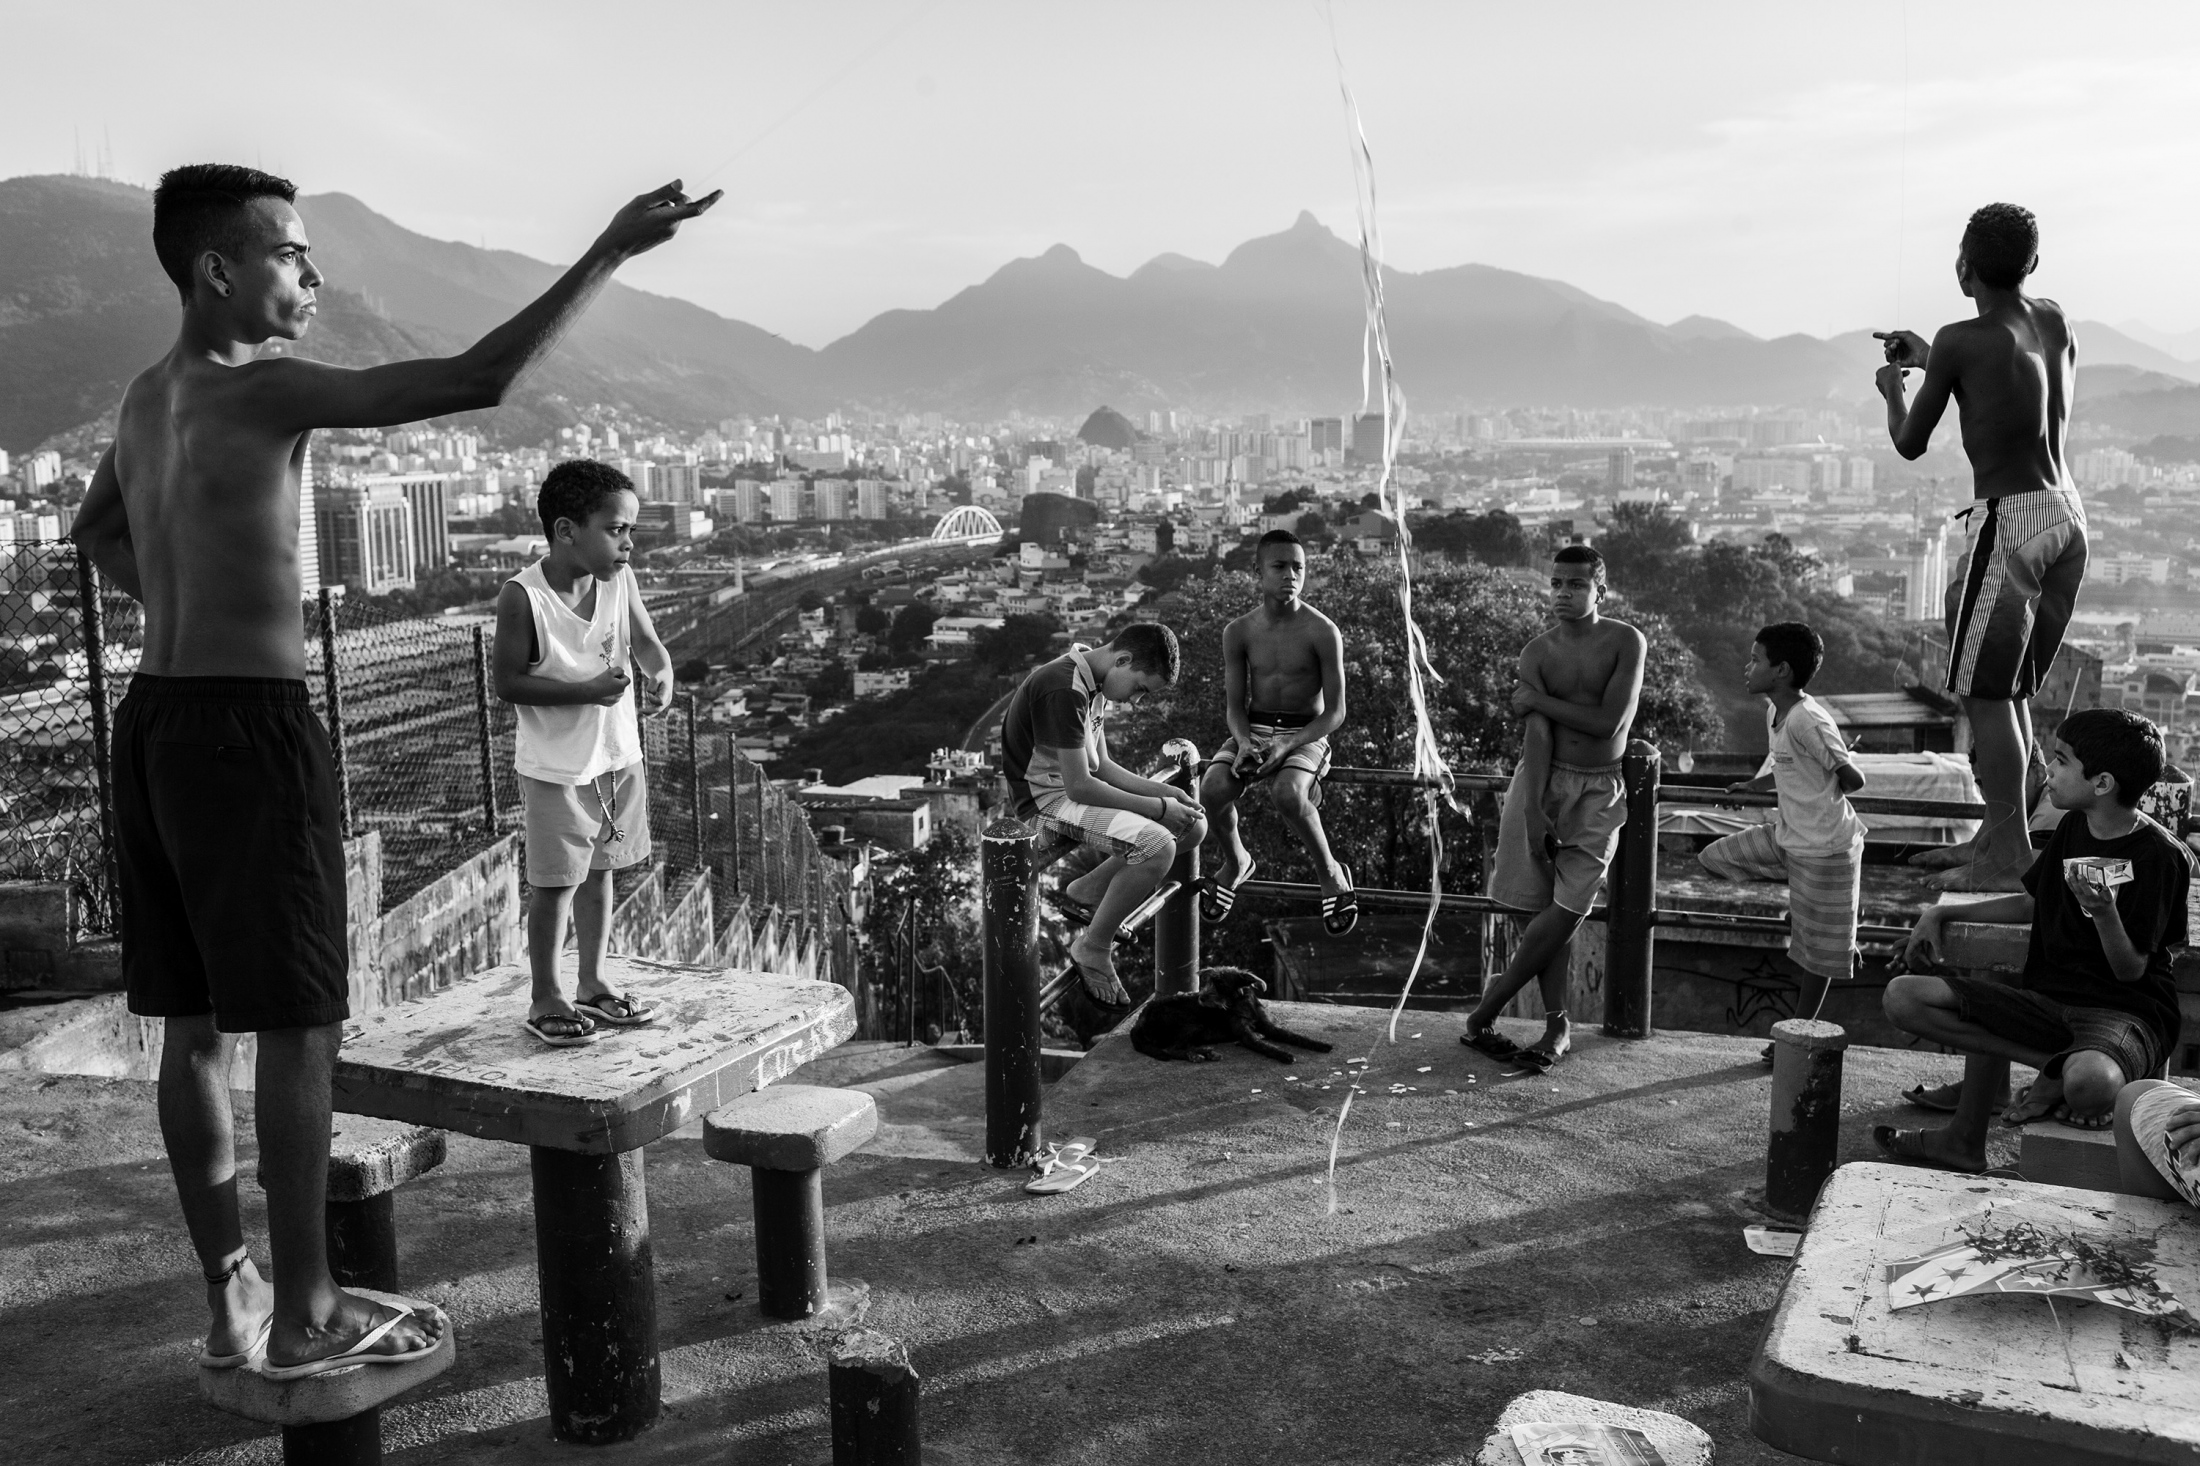 Young boys play with kites in the Providência favela. During the FIFA World Cup in Brazil, the schools of Rio de Janeiro remained closed, leaving the youngsters with nothing to do for a whole month. June 2014.